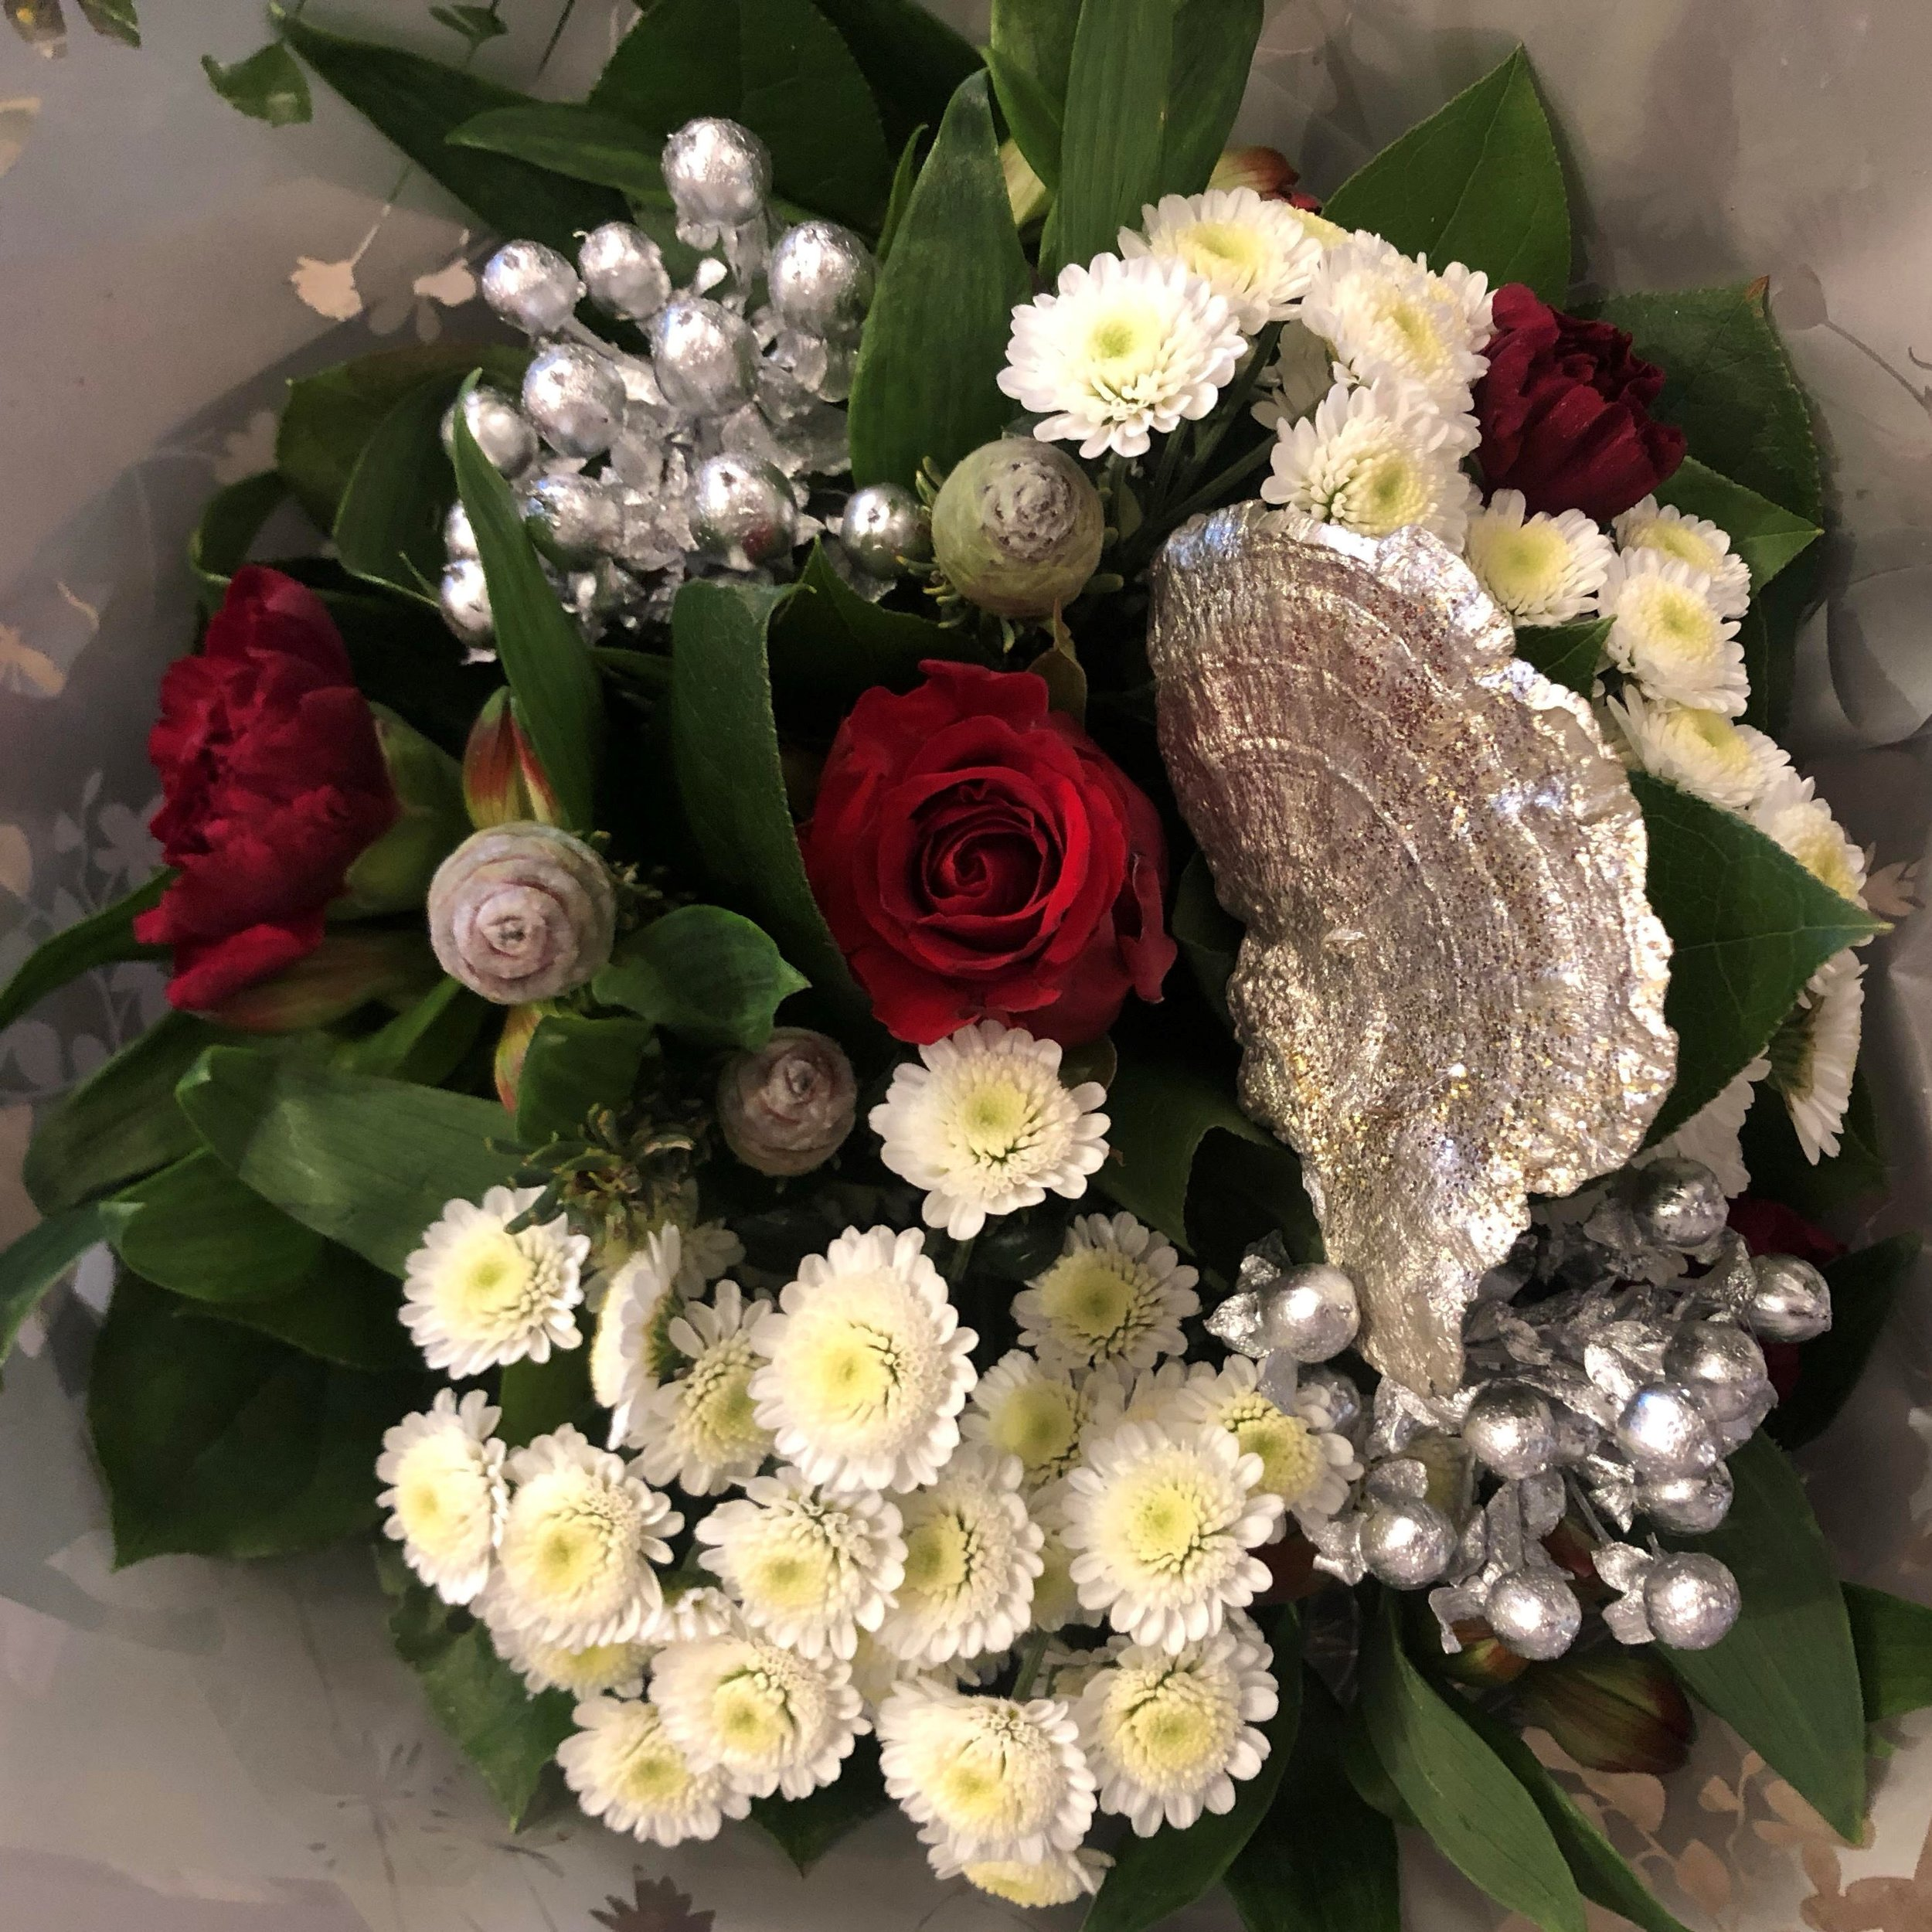 Christmas Festive Bouquets Lucas May Florist Gifts Knebworth Hertfordshire